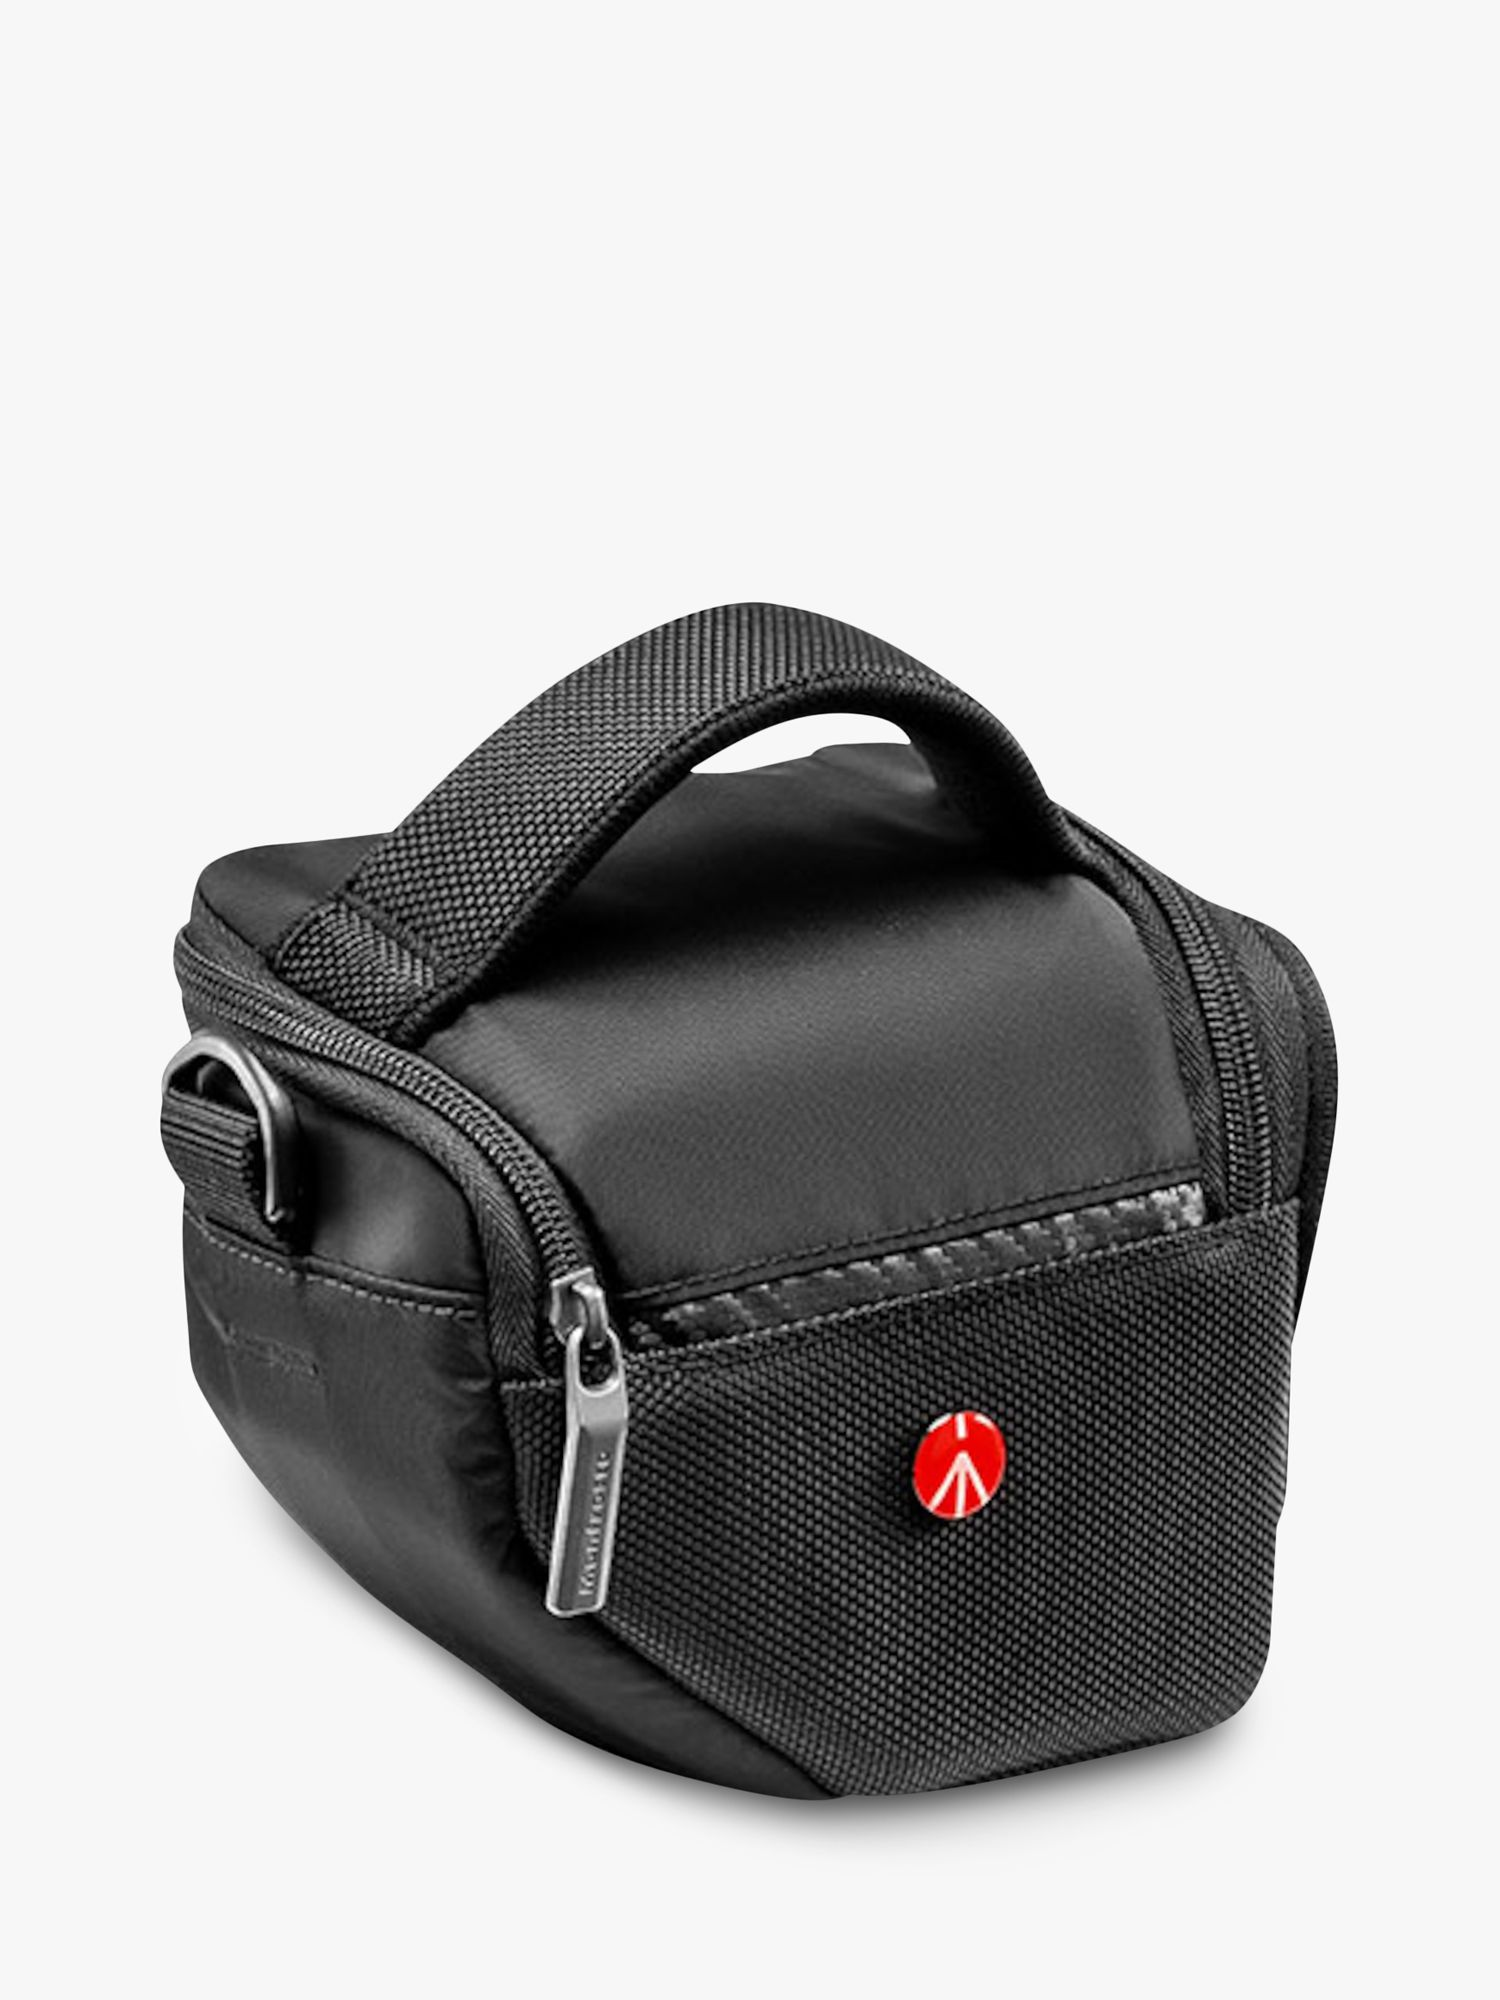 Manfrotto Manfrotto Advanced XS Camera Holster Bag for CSCs, Black